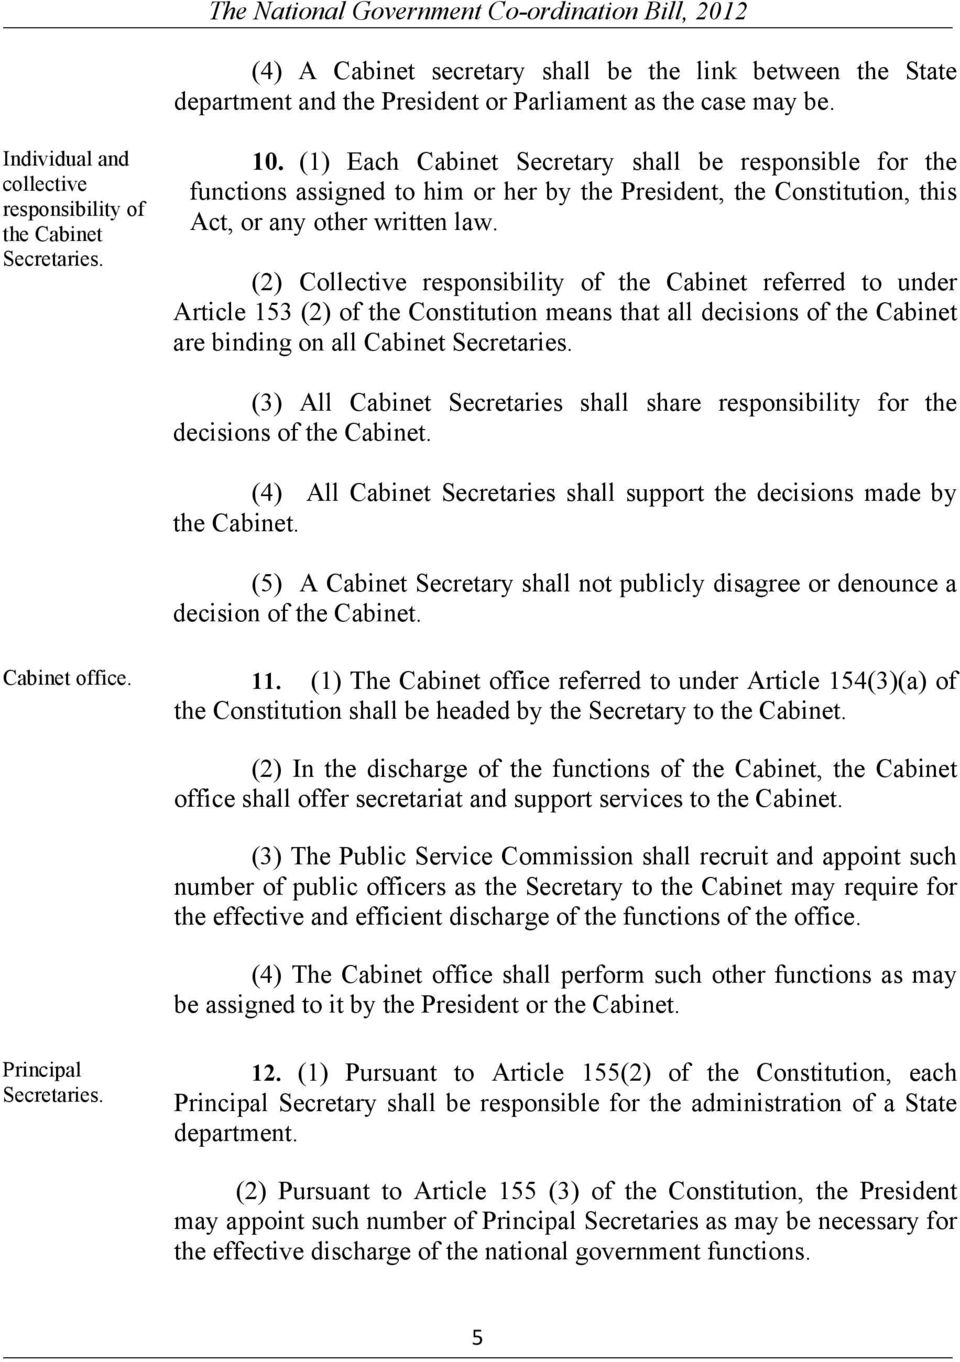 (2) Collective responsibility of the Cabinet referred to under Article 153 (2) of the Constitution means that all decisions of the Cabinet are binding on all Cabinet Secretaries.